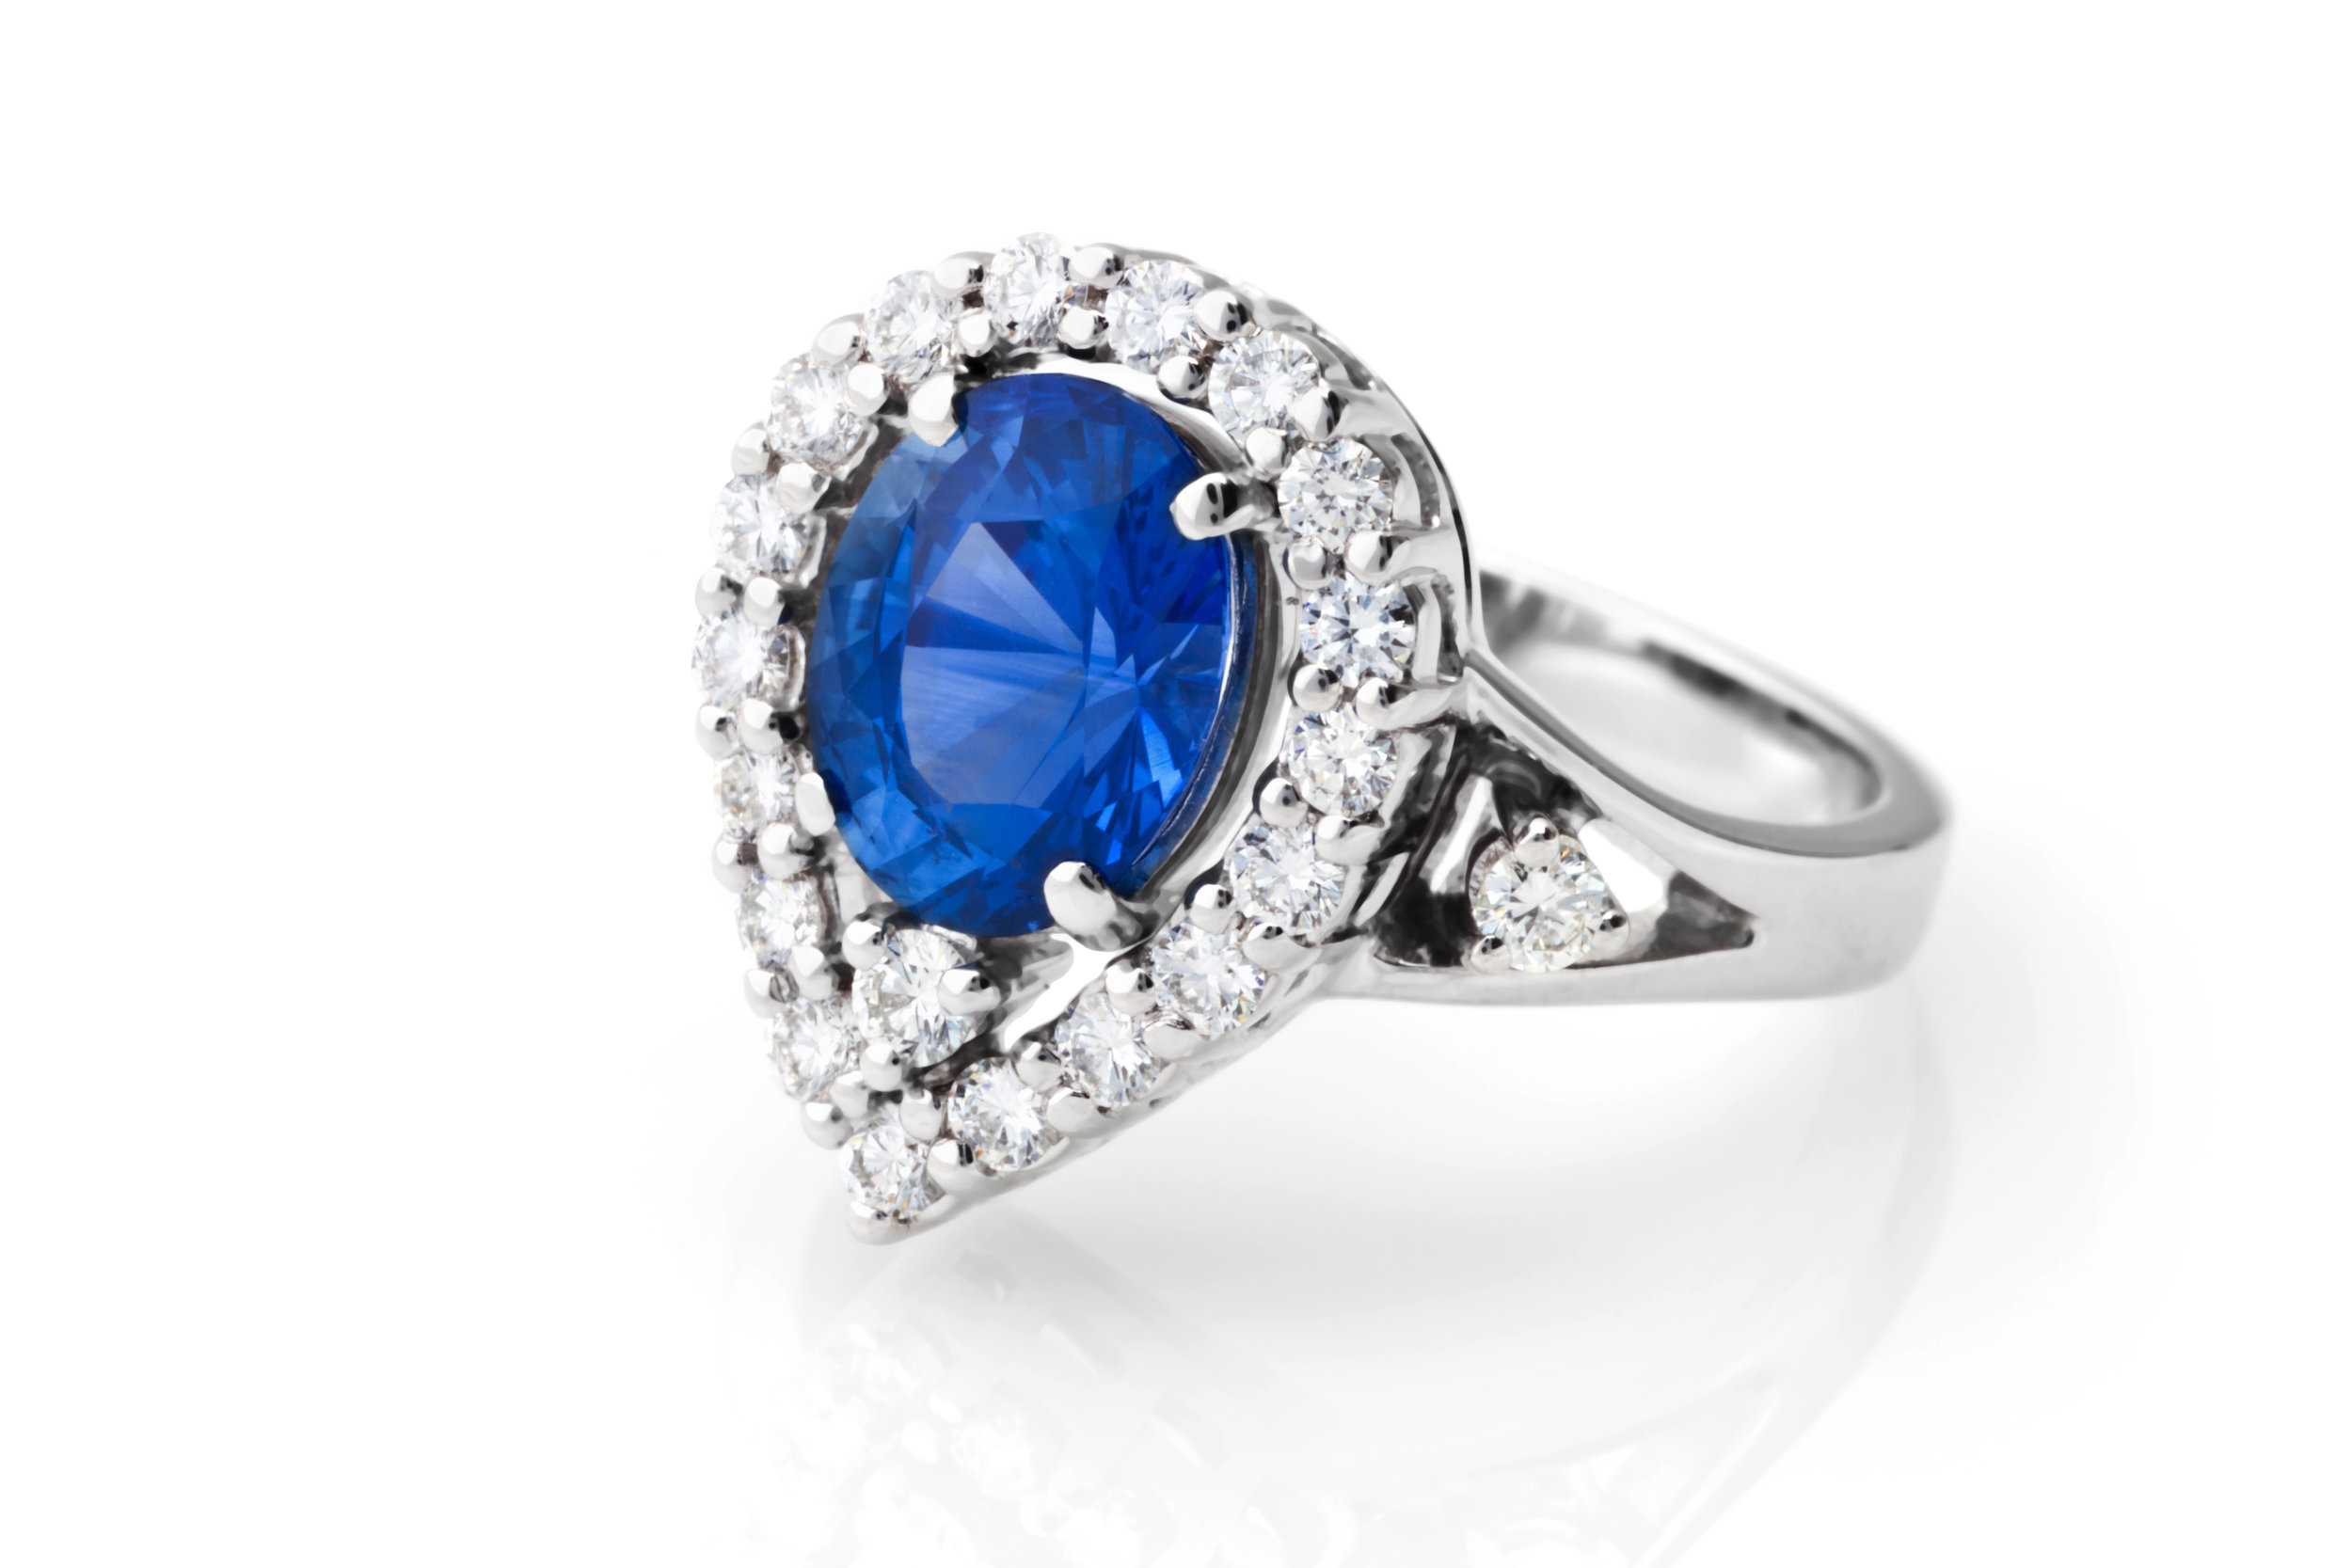 Sapphire Ring - Jewelry Appraisal